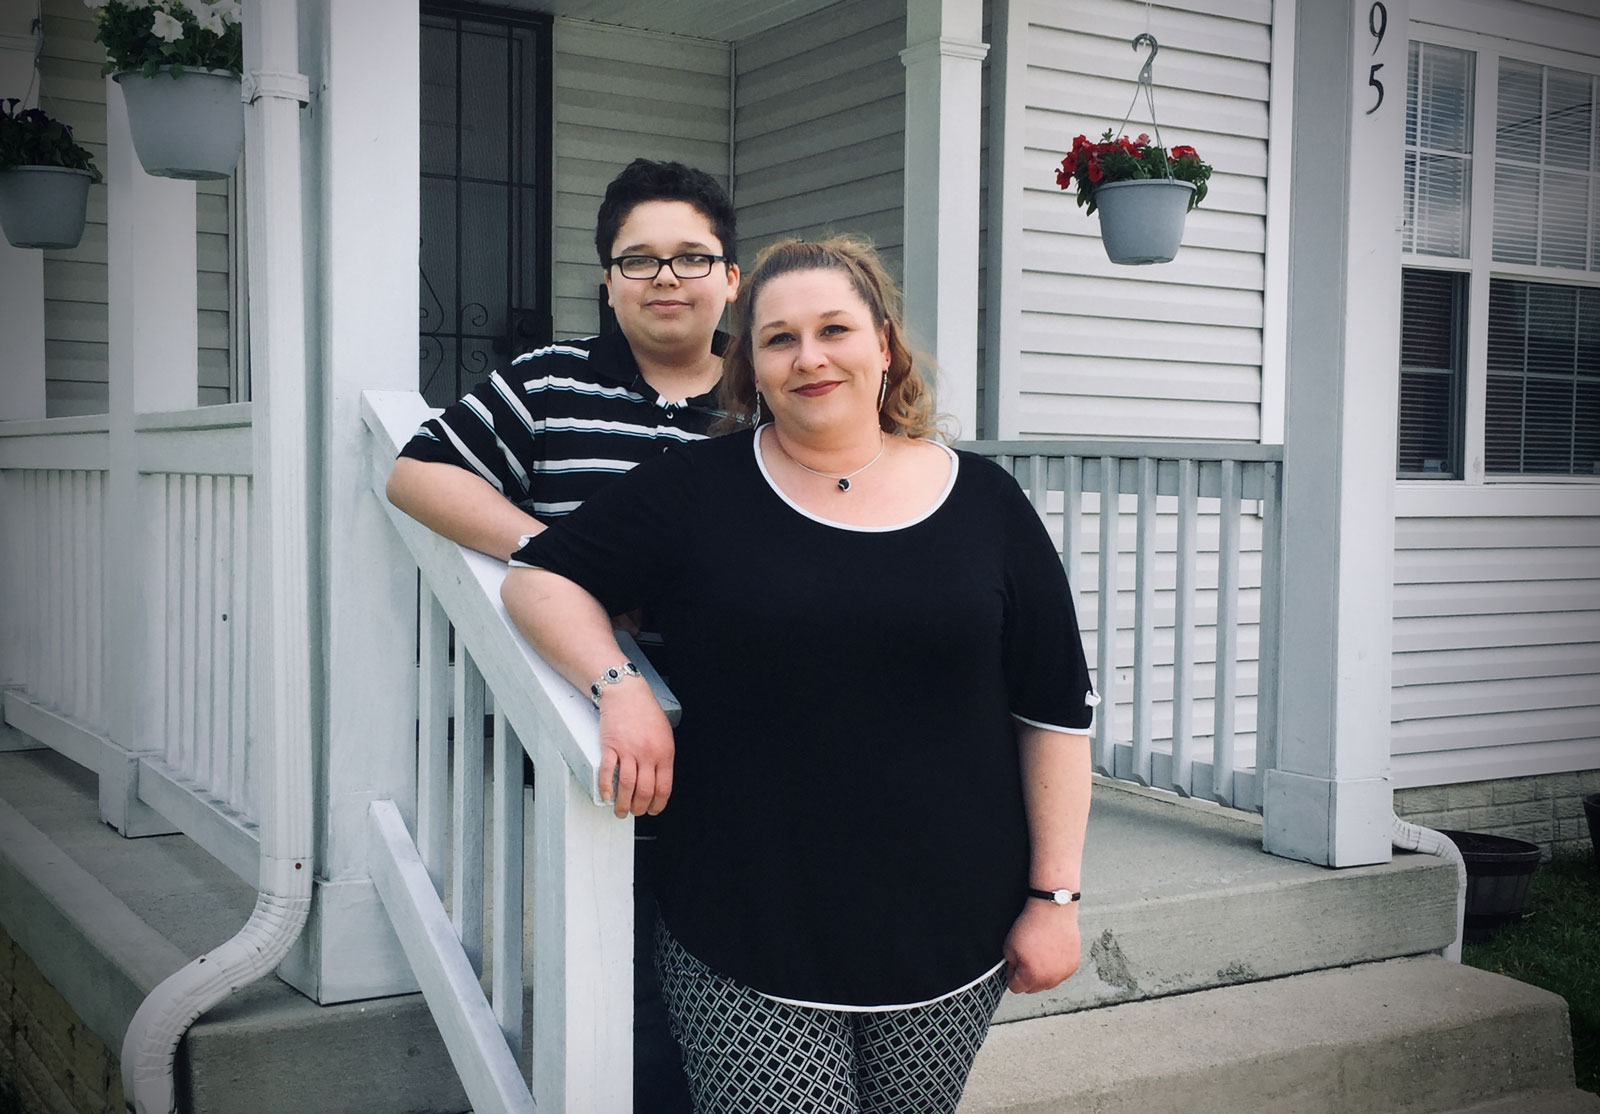 Maggie with her son Bryan in front of their home.